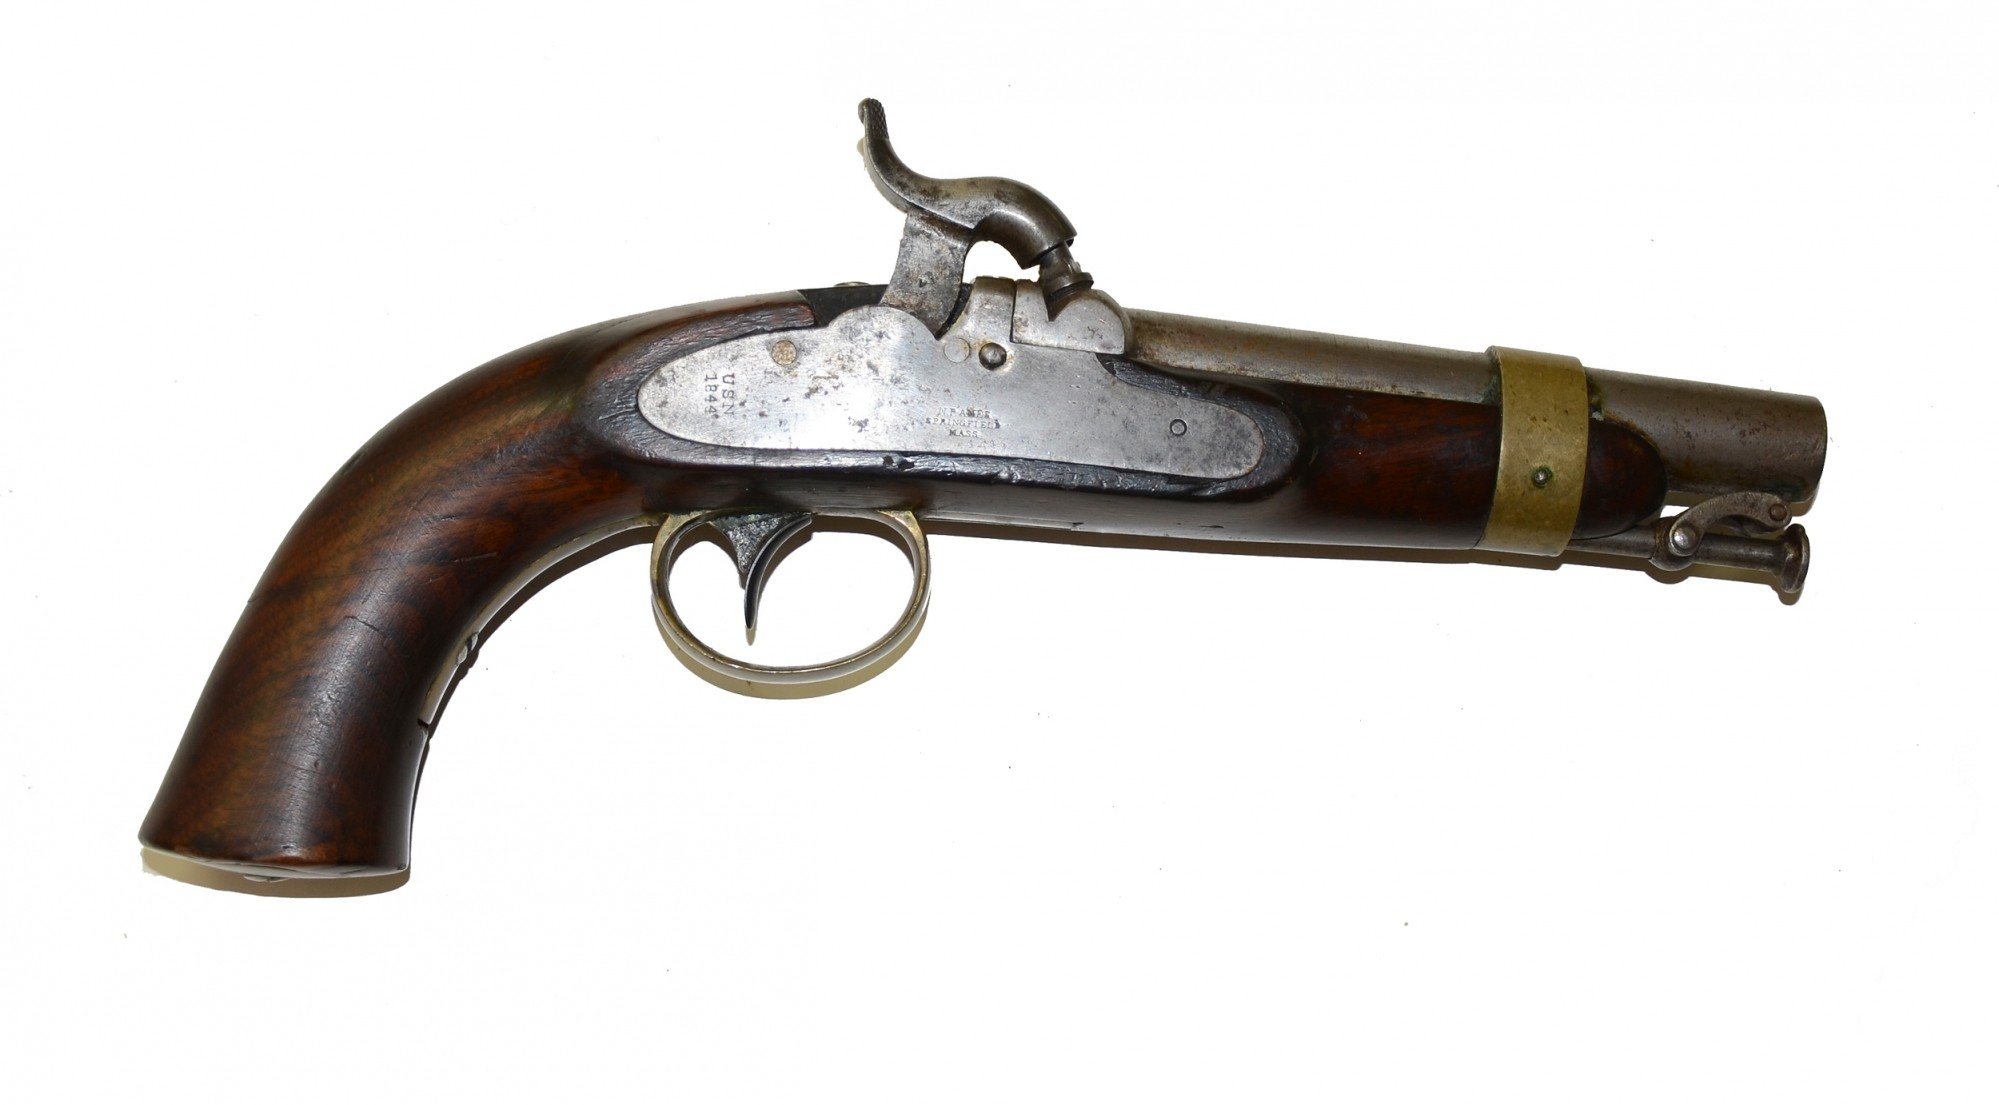 N. P. AMES NAVY PERCUSSION PISTOL, M1843, DATED 1844